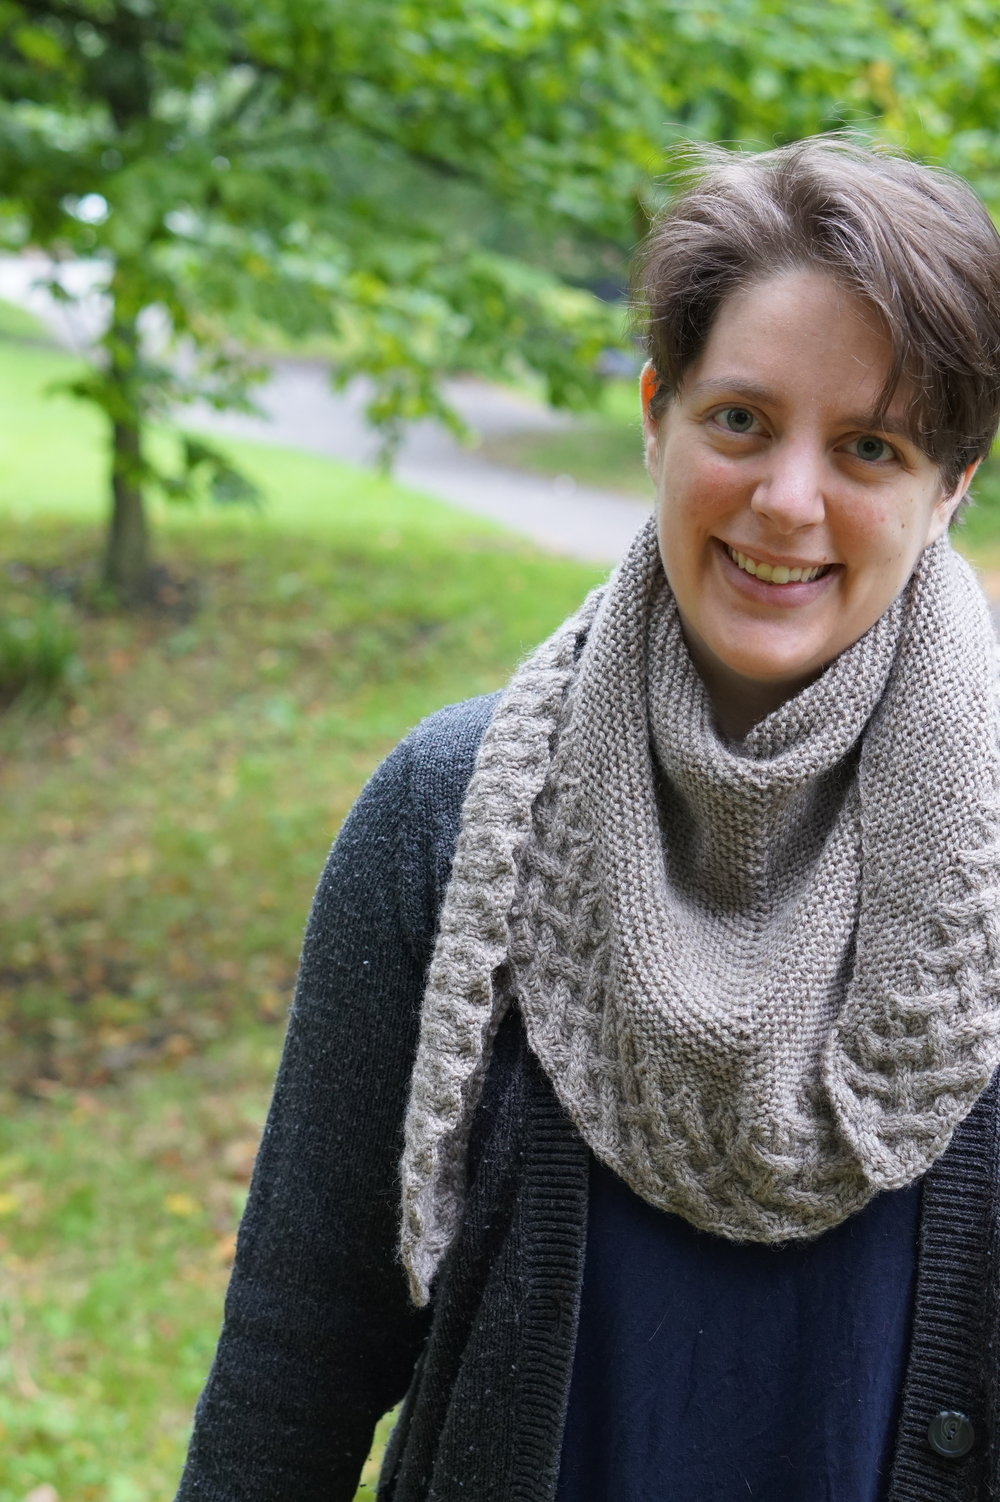 Hi, I'm Joeli! - I'm a knitter, tech editor, mum to two boys, course creator, biz coach, and lover of sports documentaries. I started knitting when I was a child and basically never stopped. I was a super nerdy child; head always in a book and in love with space, maths, and science. After a brief stint at MIT, I ended up at the University of Liverpool and earned a BSc in Mathematics with Education (I also published my first design while I was there.) Shortly after graduating in 2008, being unsure what to do next, I discovered the world of test knitting and tech editing. I went on to work with magazines, yarn companies, a book publisher, and hundreds of designers. I've created courses, ran knitting retreats, demonstrated HiyaHiya needles on live TV, and vended at shows. I've been lucky enough to teach hundreds of knitters to become tech editors and watch as they go on to build thriving tech editing careers of their own. It's been amazing and I'm so grateful for the crazy turn of events that lead me here.